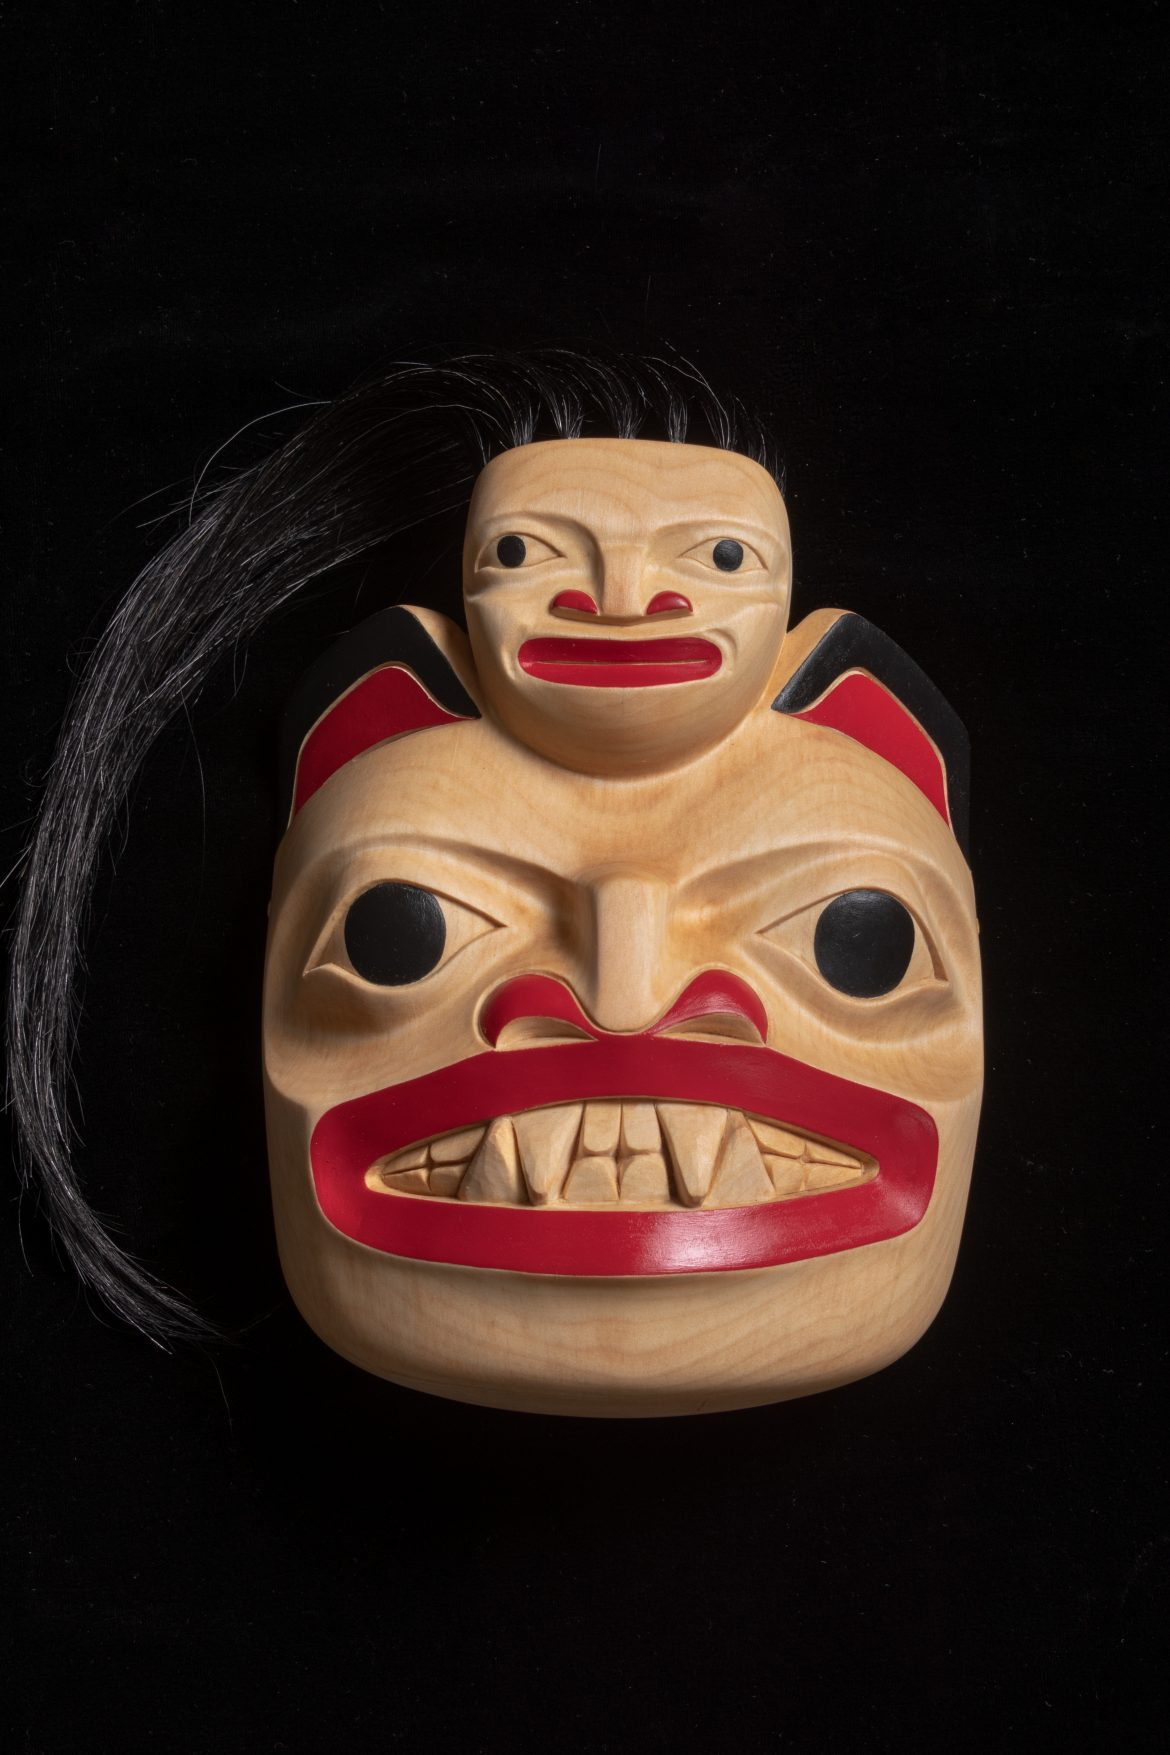 Cedar carving artwork by Yukon Artist Lorraine M Wolfe